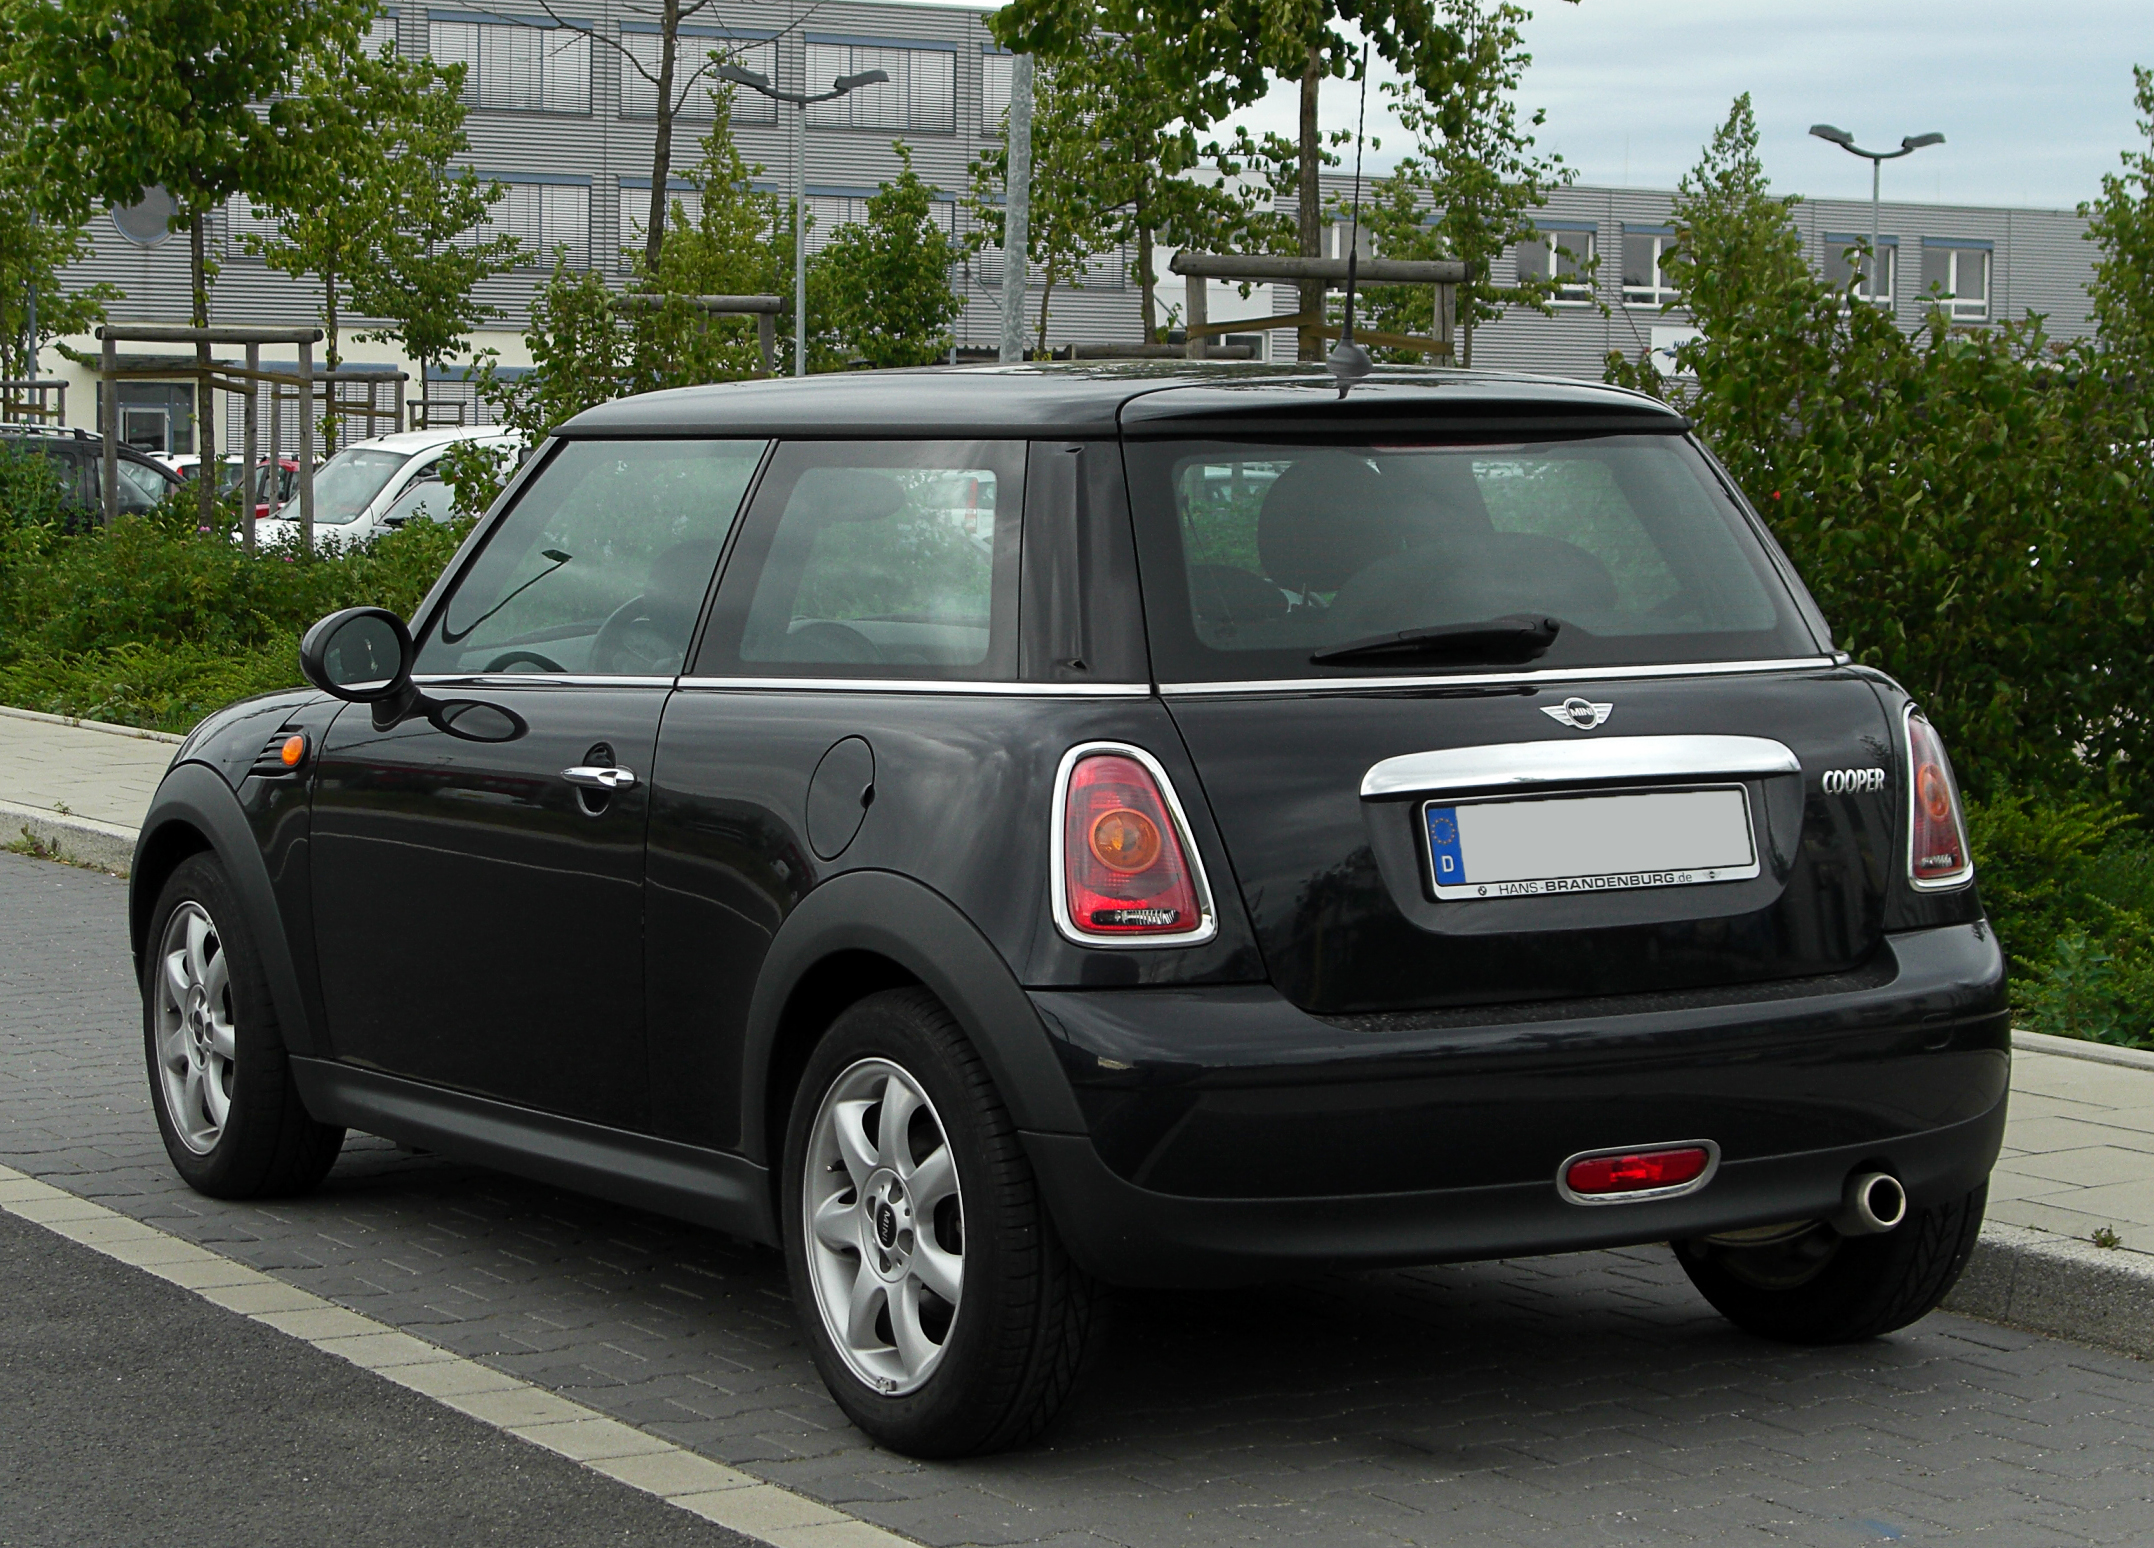 file mini cooper r56 heckansicht 28 mai 2011 d wikimedia commons. Black Bedroom Furniture Sets. Home Design Ideas